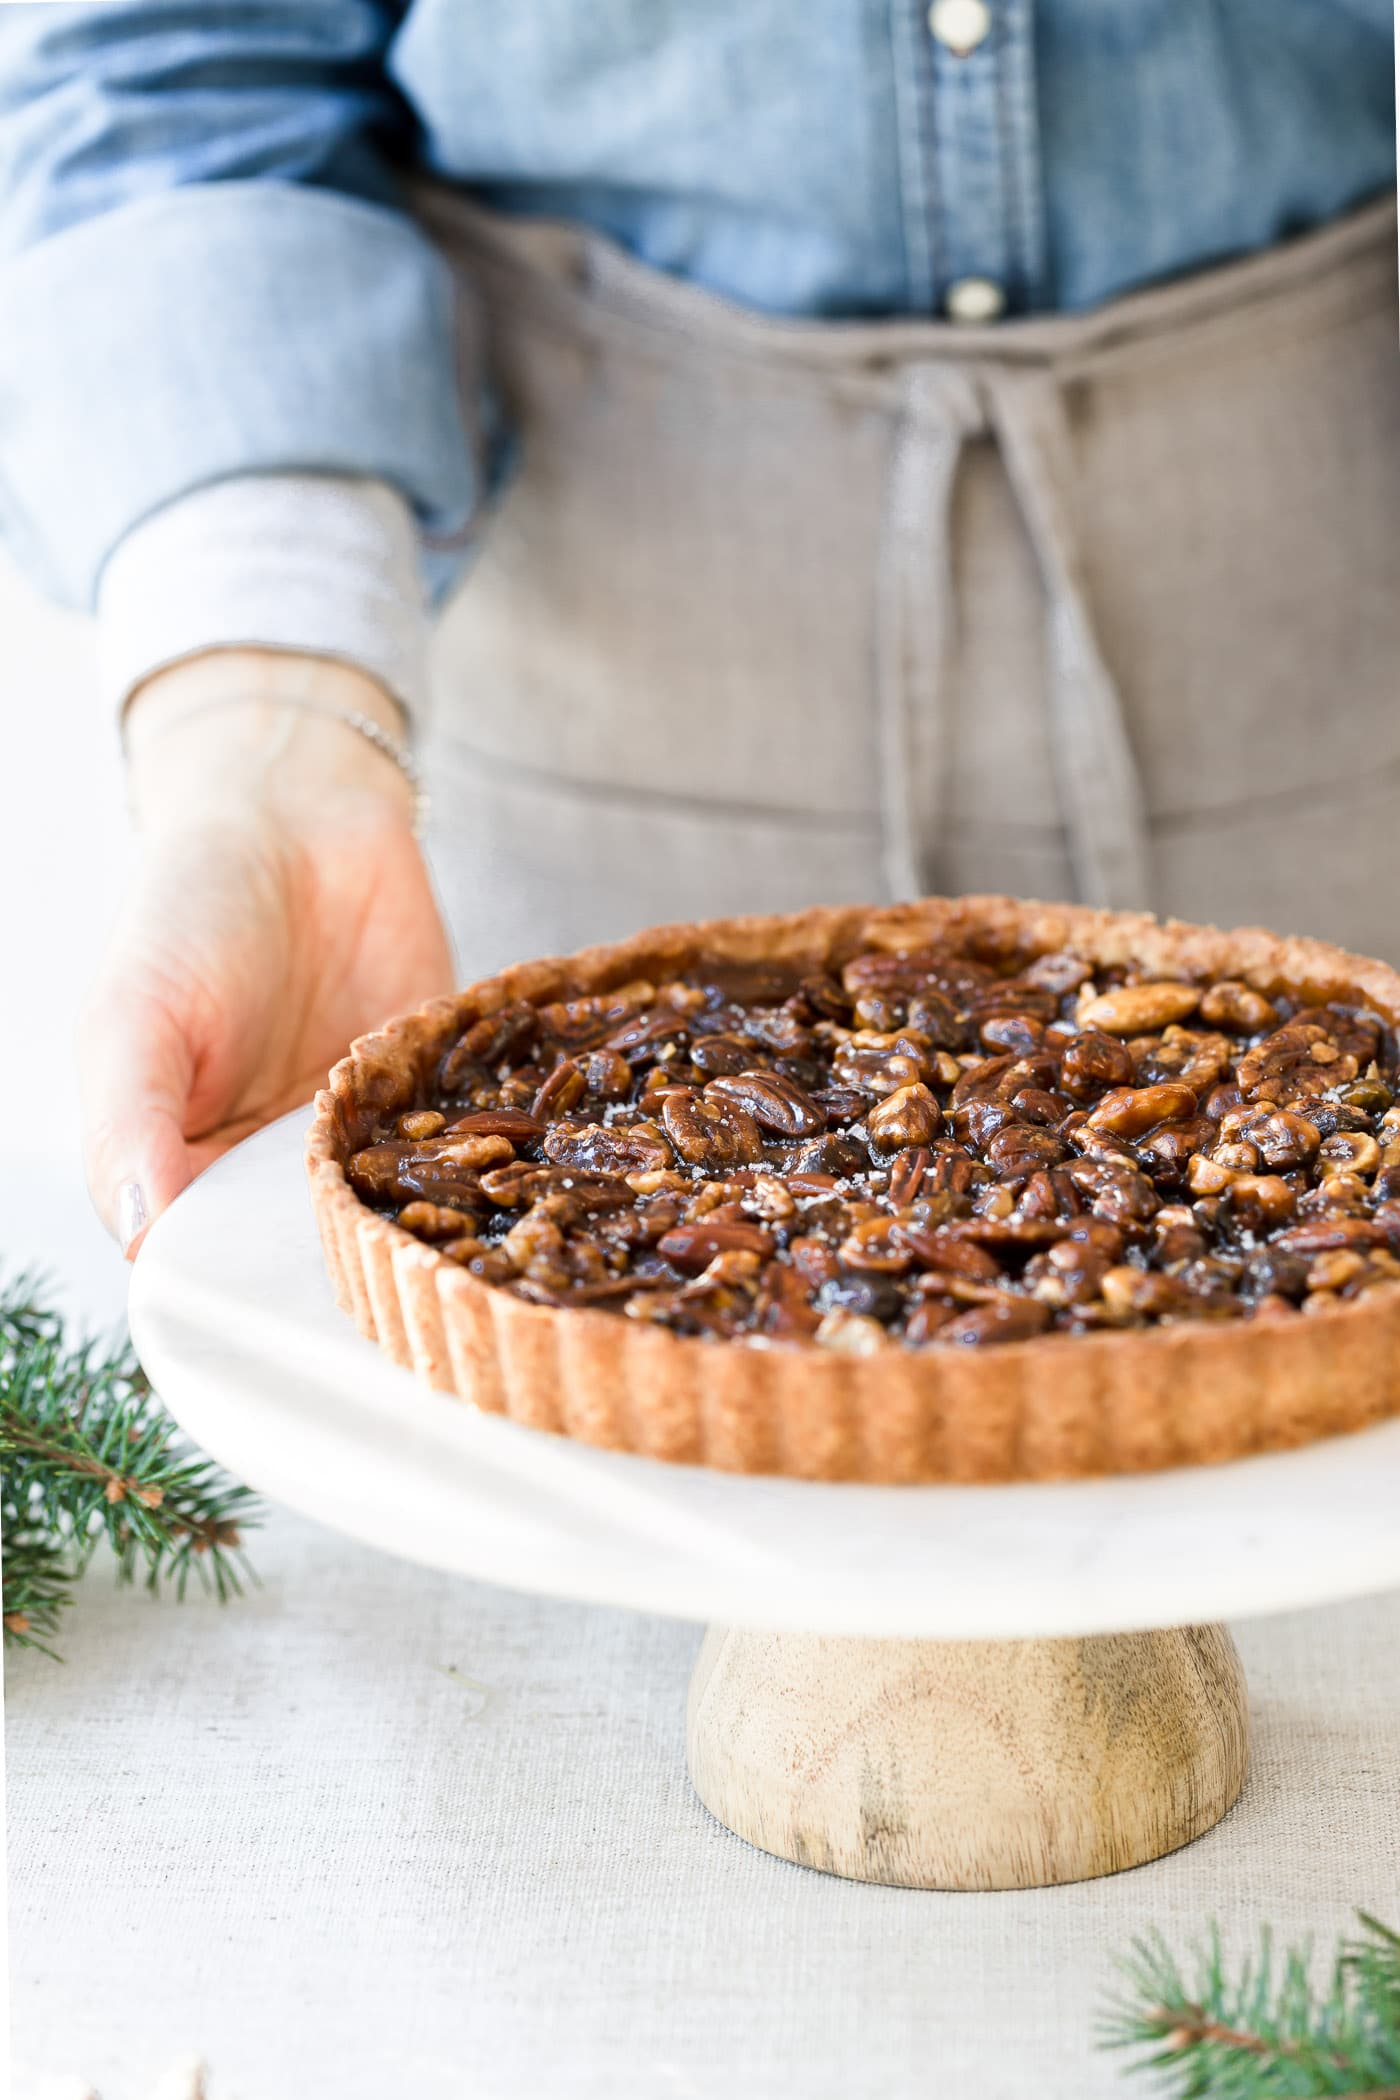 A woman is about to serve a naturally sweetened caramel nut tart.